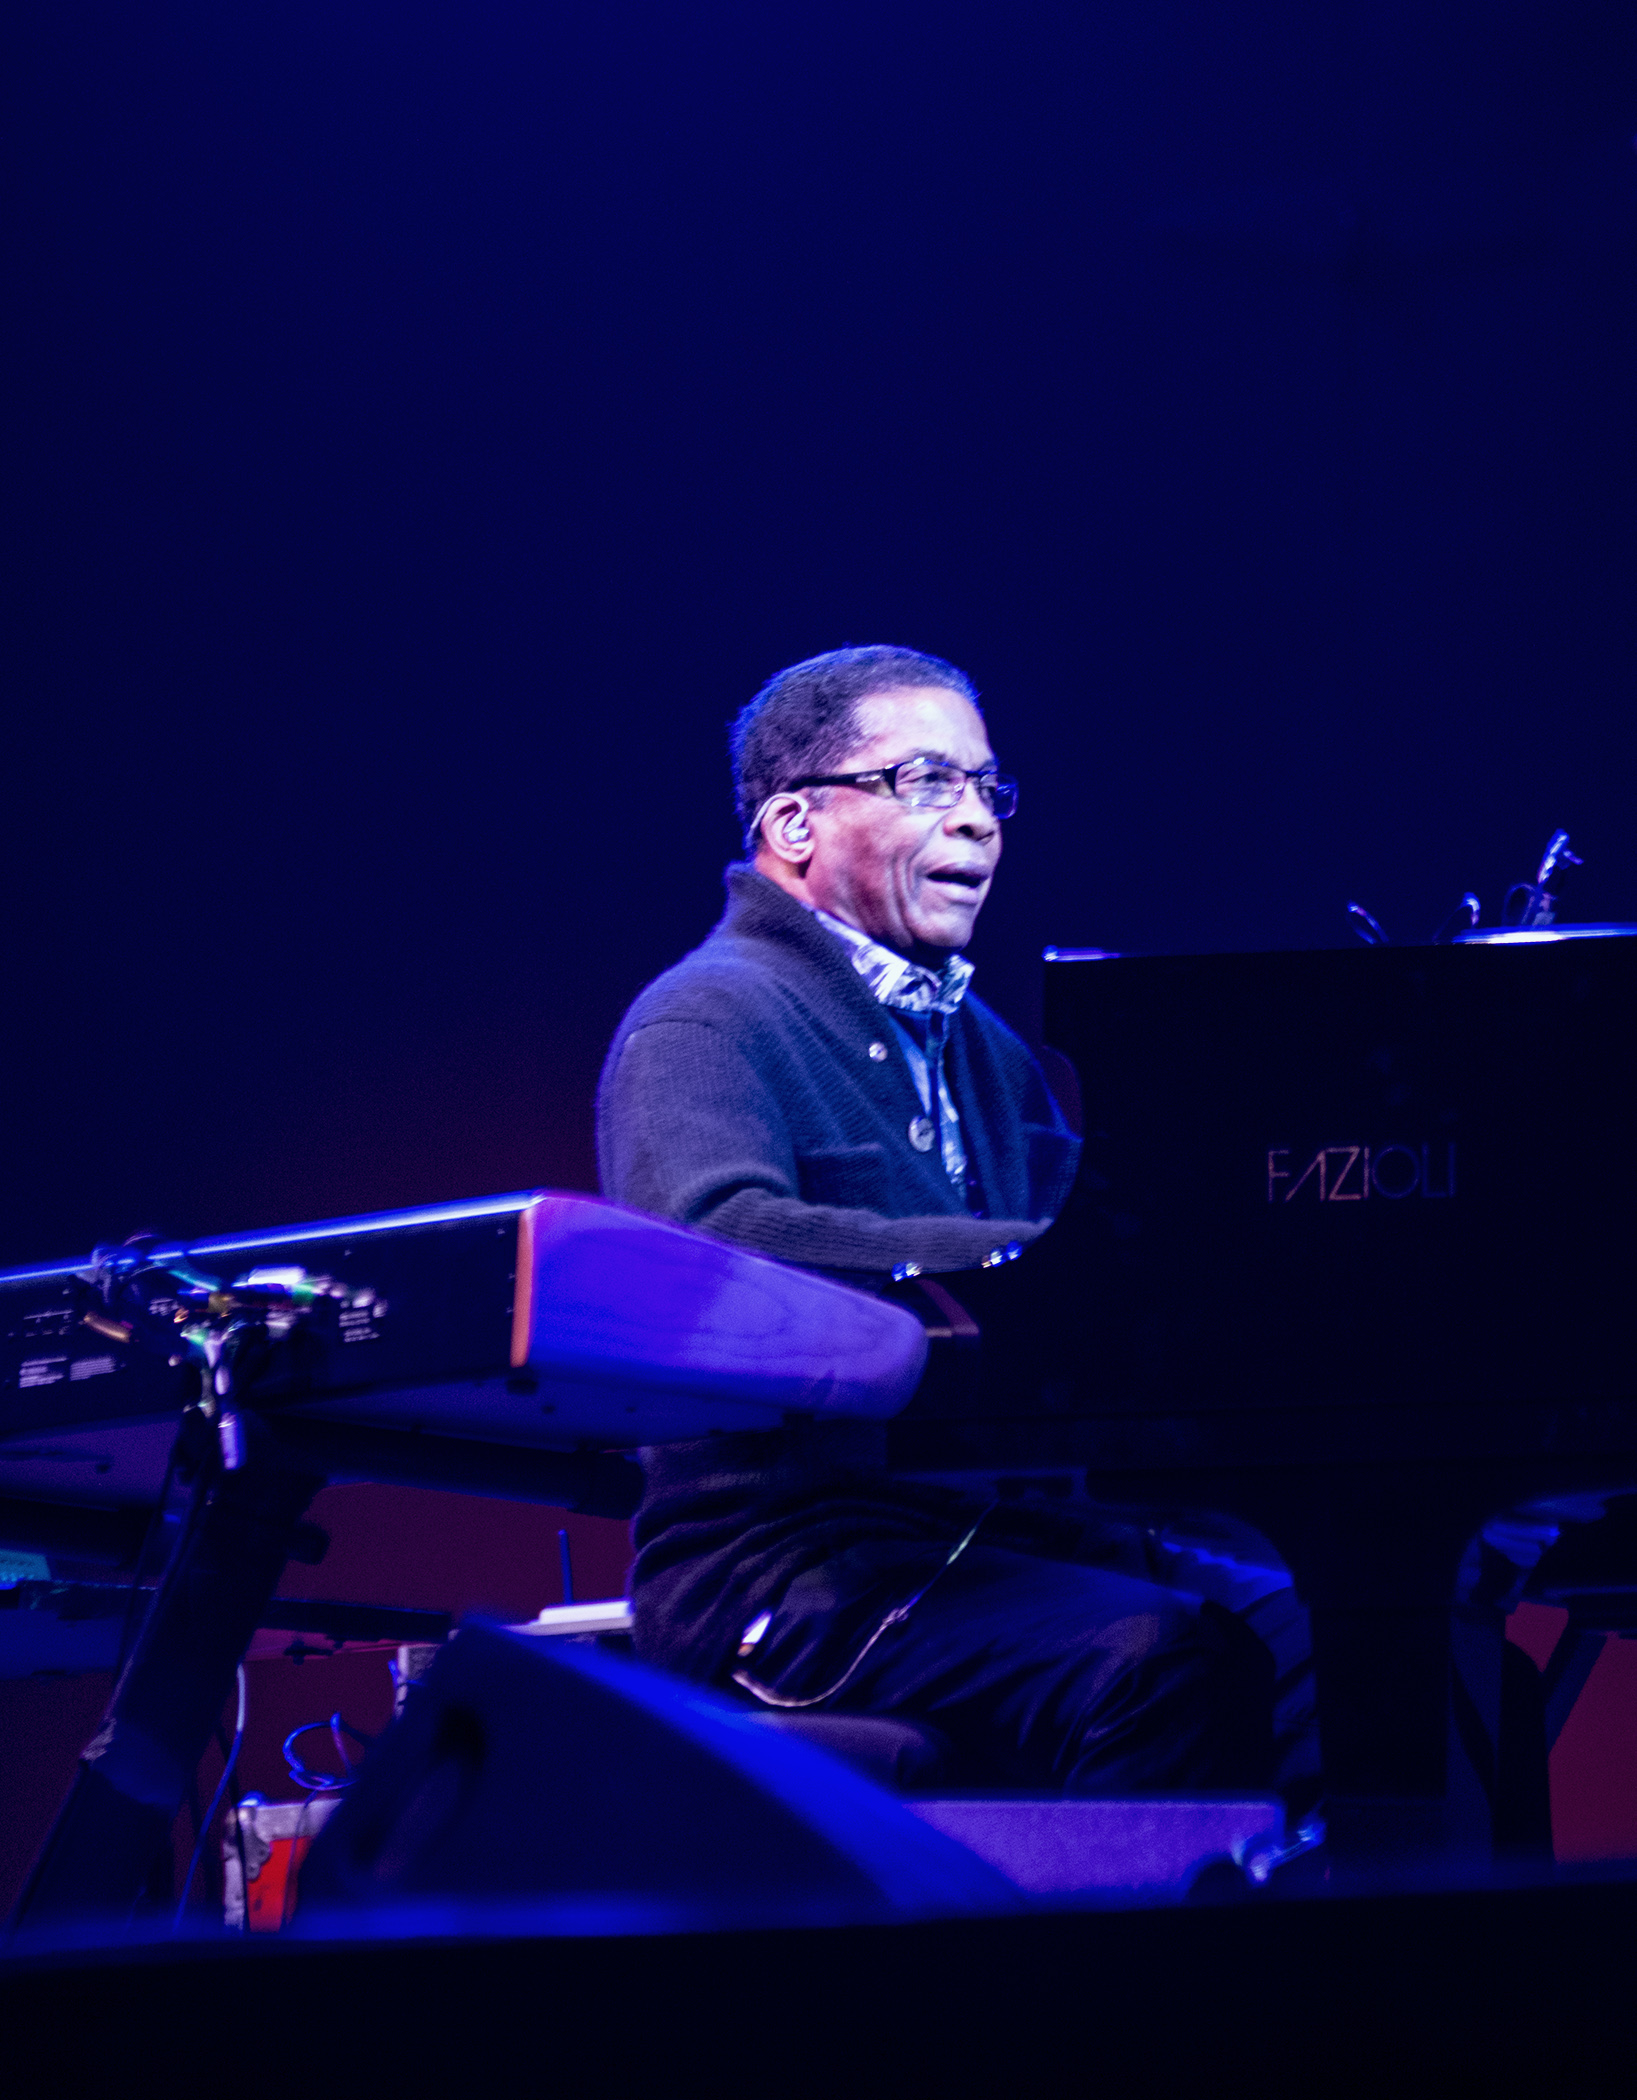 Herbie Hancock at Monterey Jazz Festival 2017